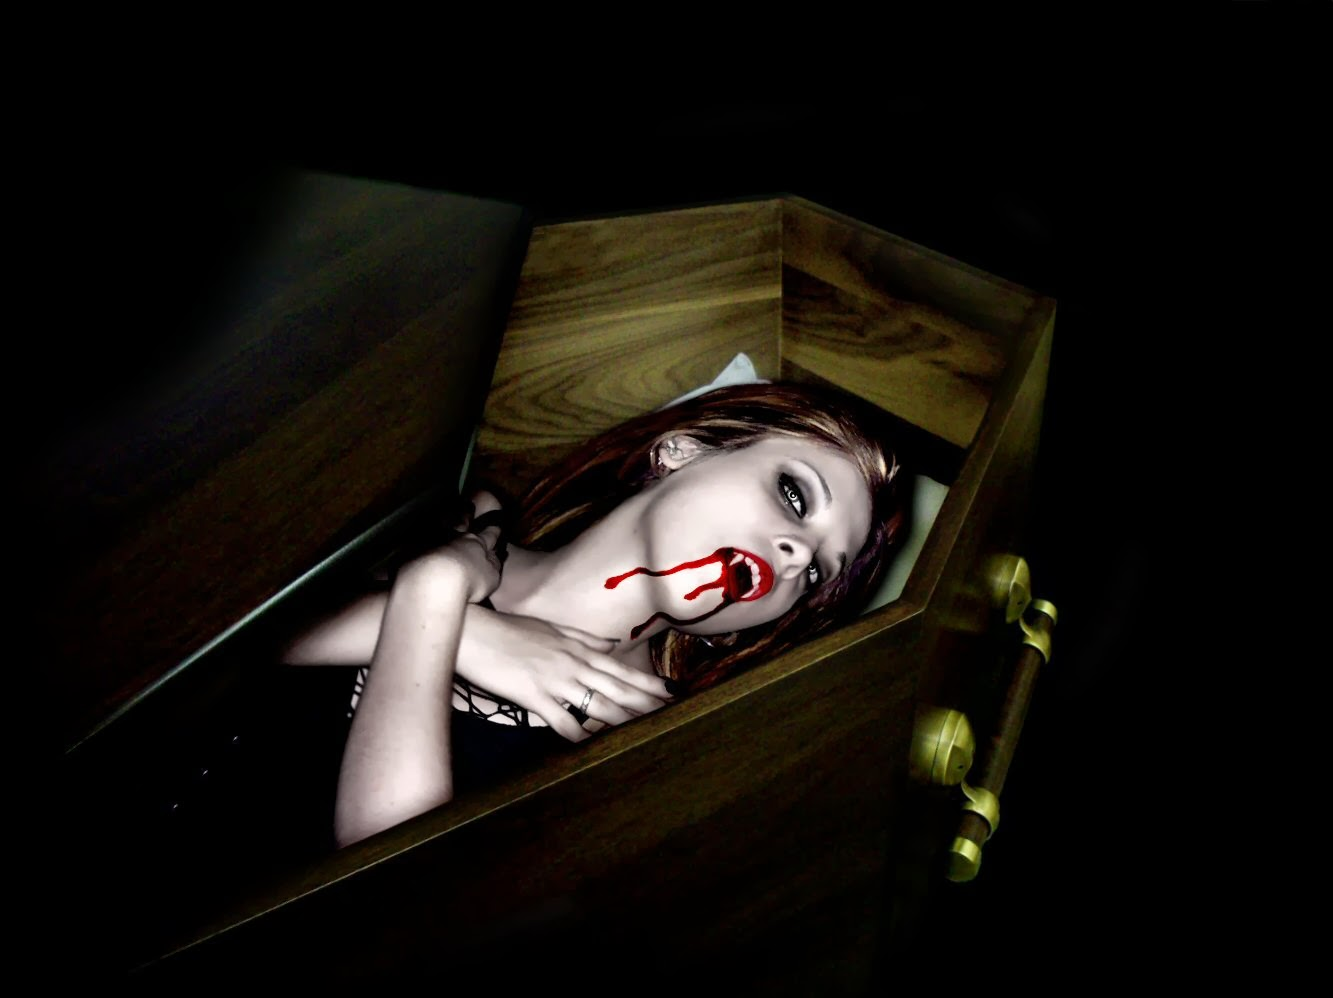 Vampire Wallpapers ~ HD Wallpapers | Funny Videos | Hot Girls Photos | Amazing Wallpapers ...